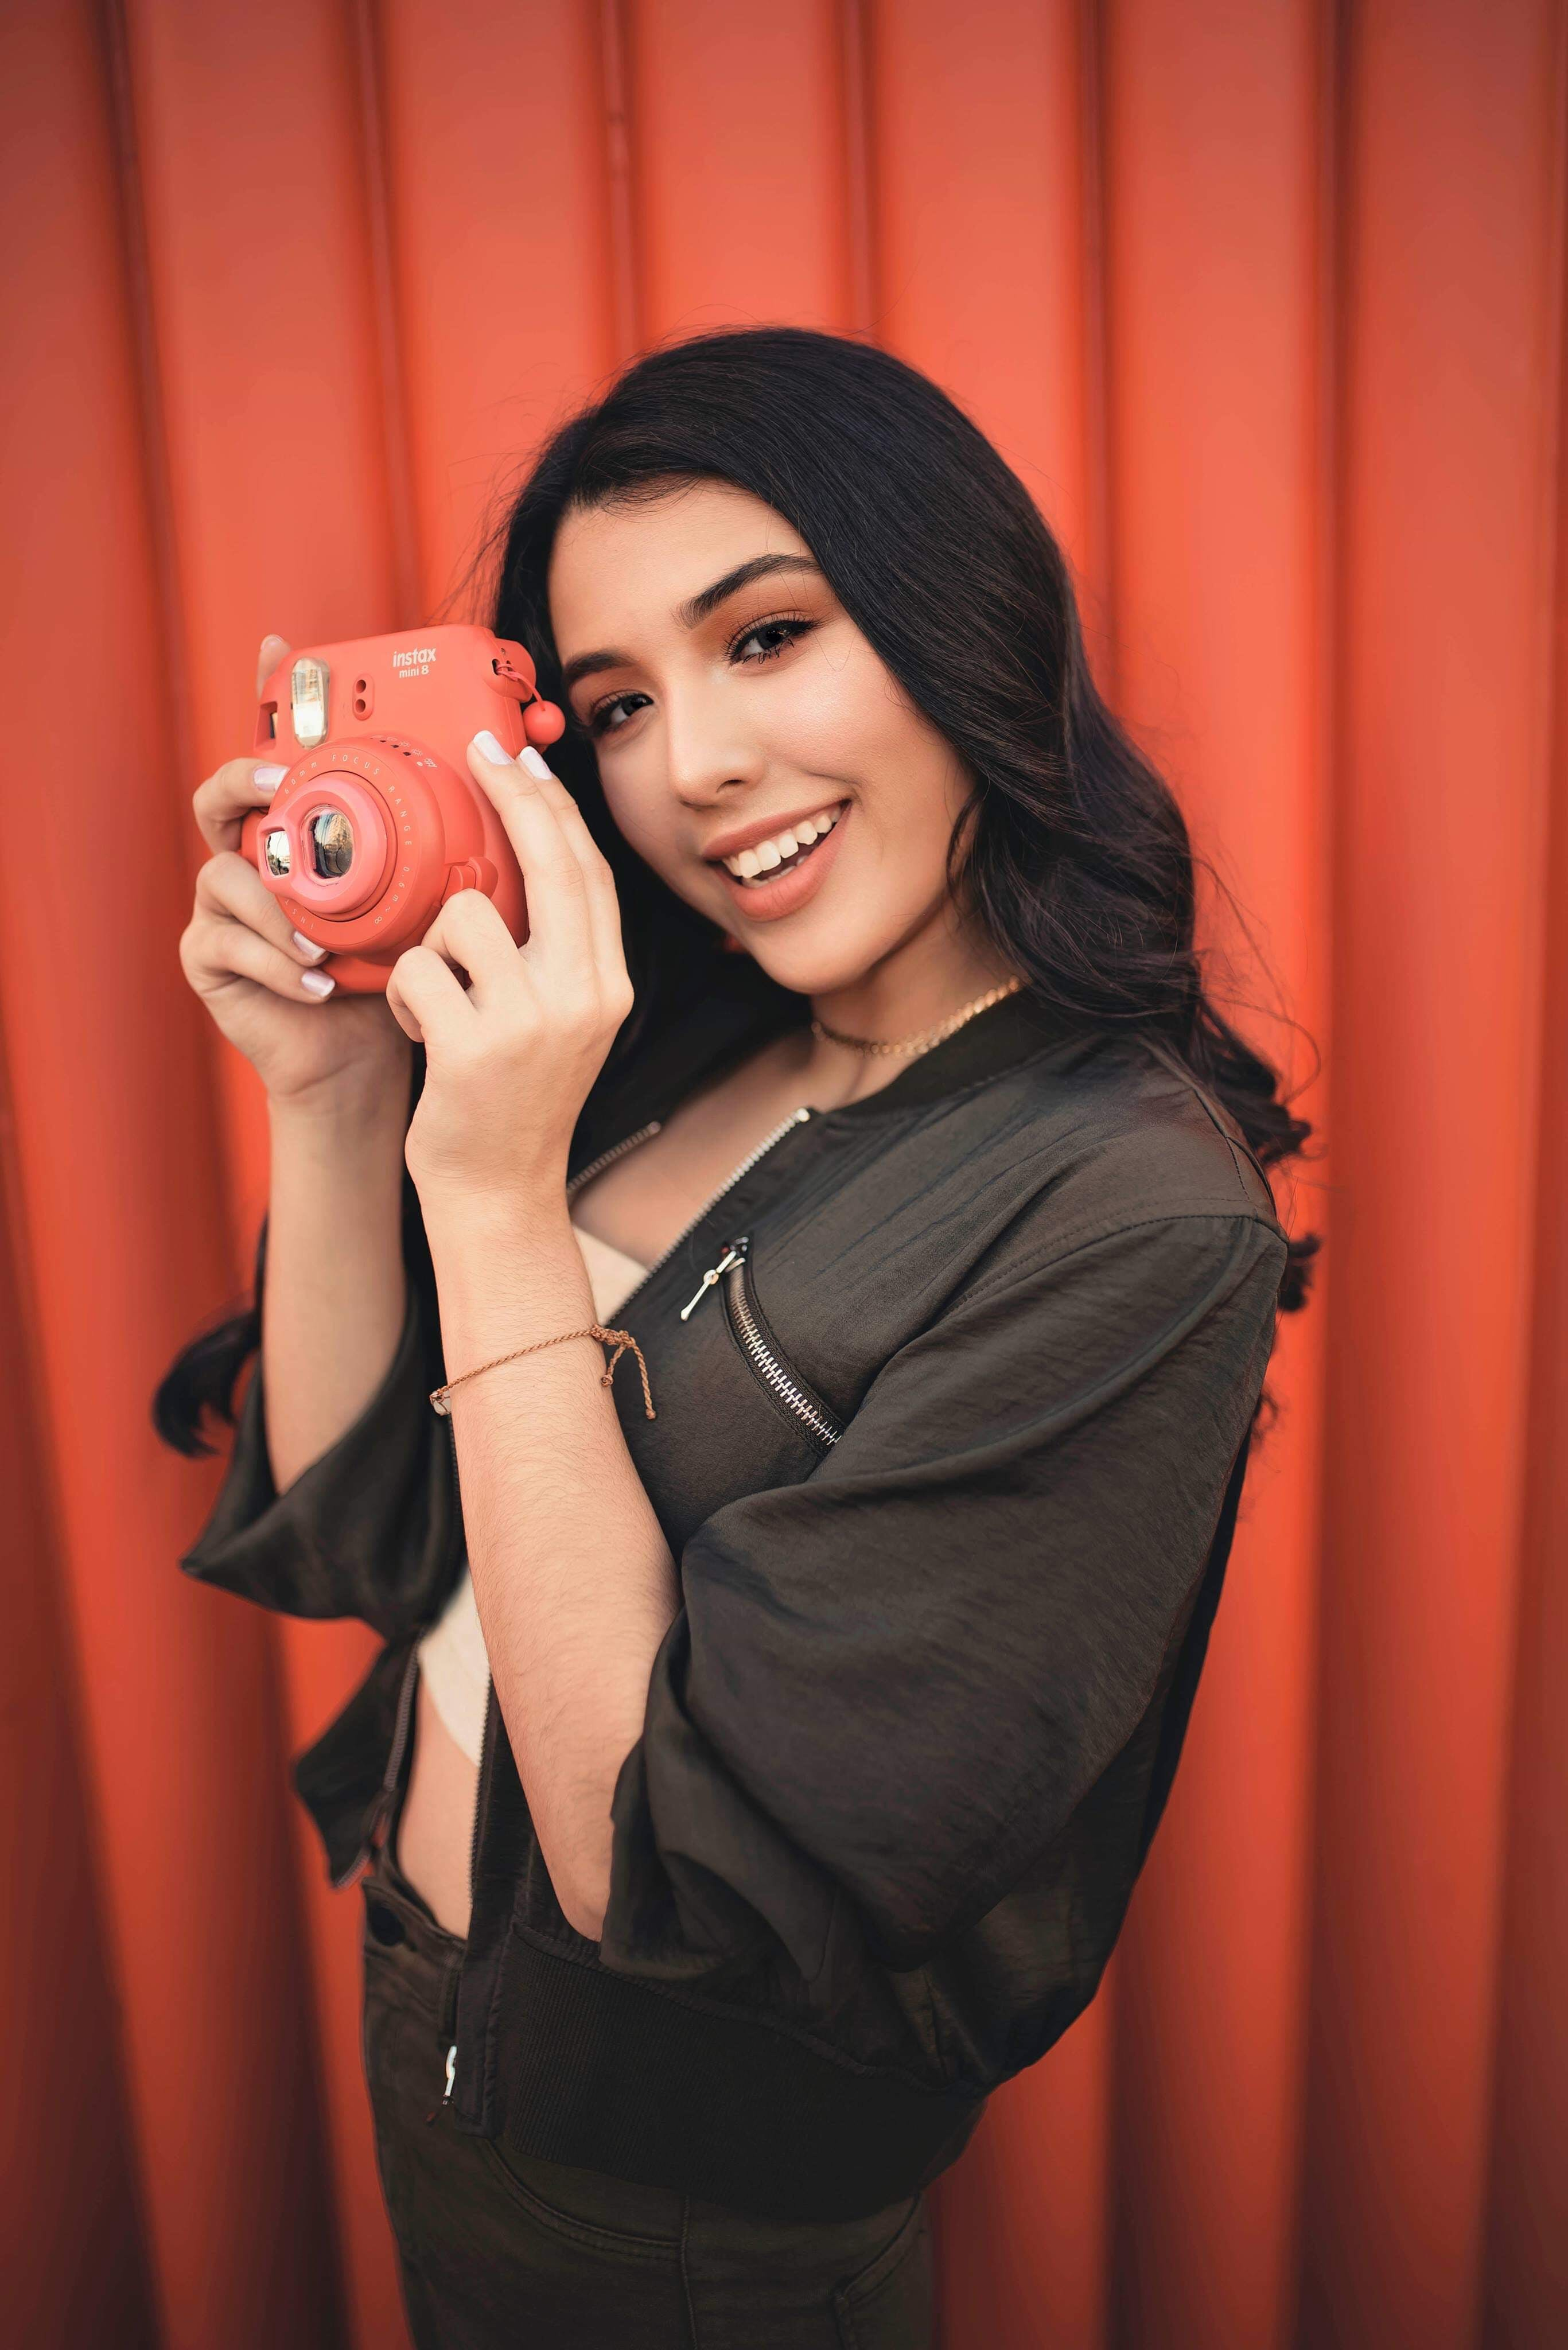 Woman Standing While Holding Red Instax Mini Camera